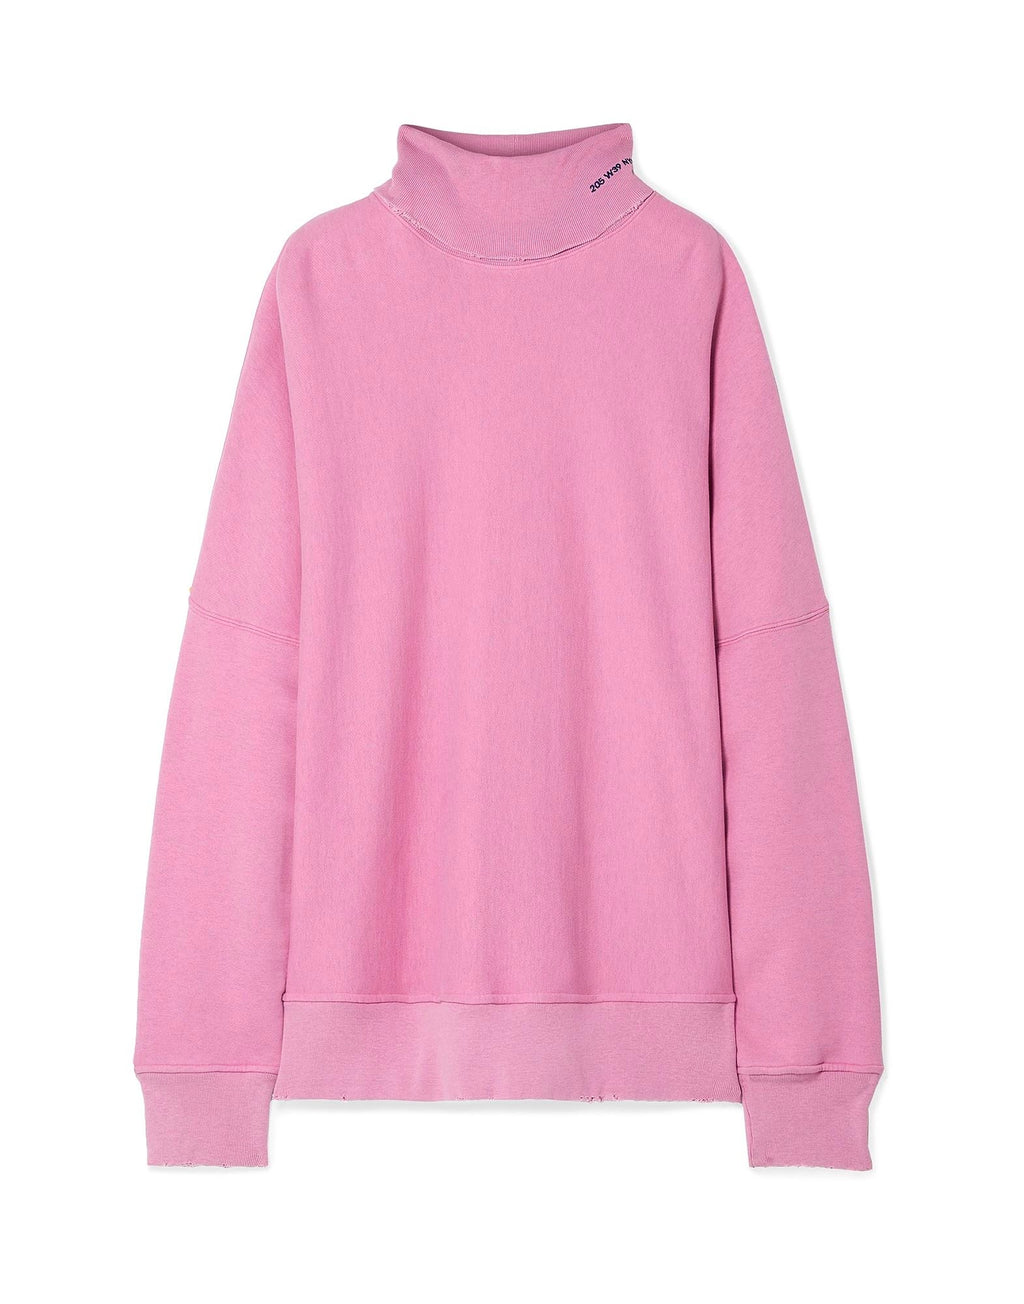 Calvin Klein Sweat Shirt Pink